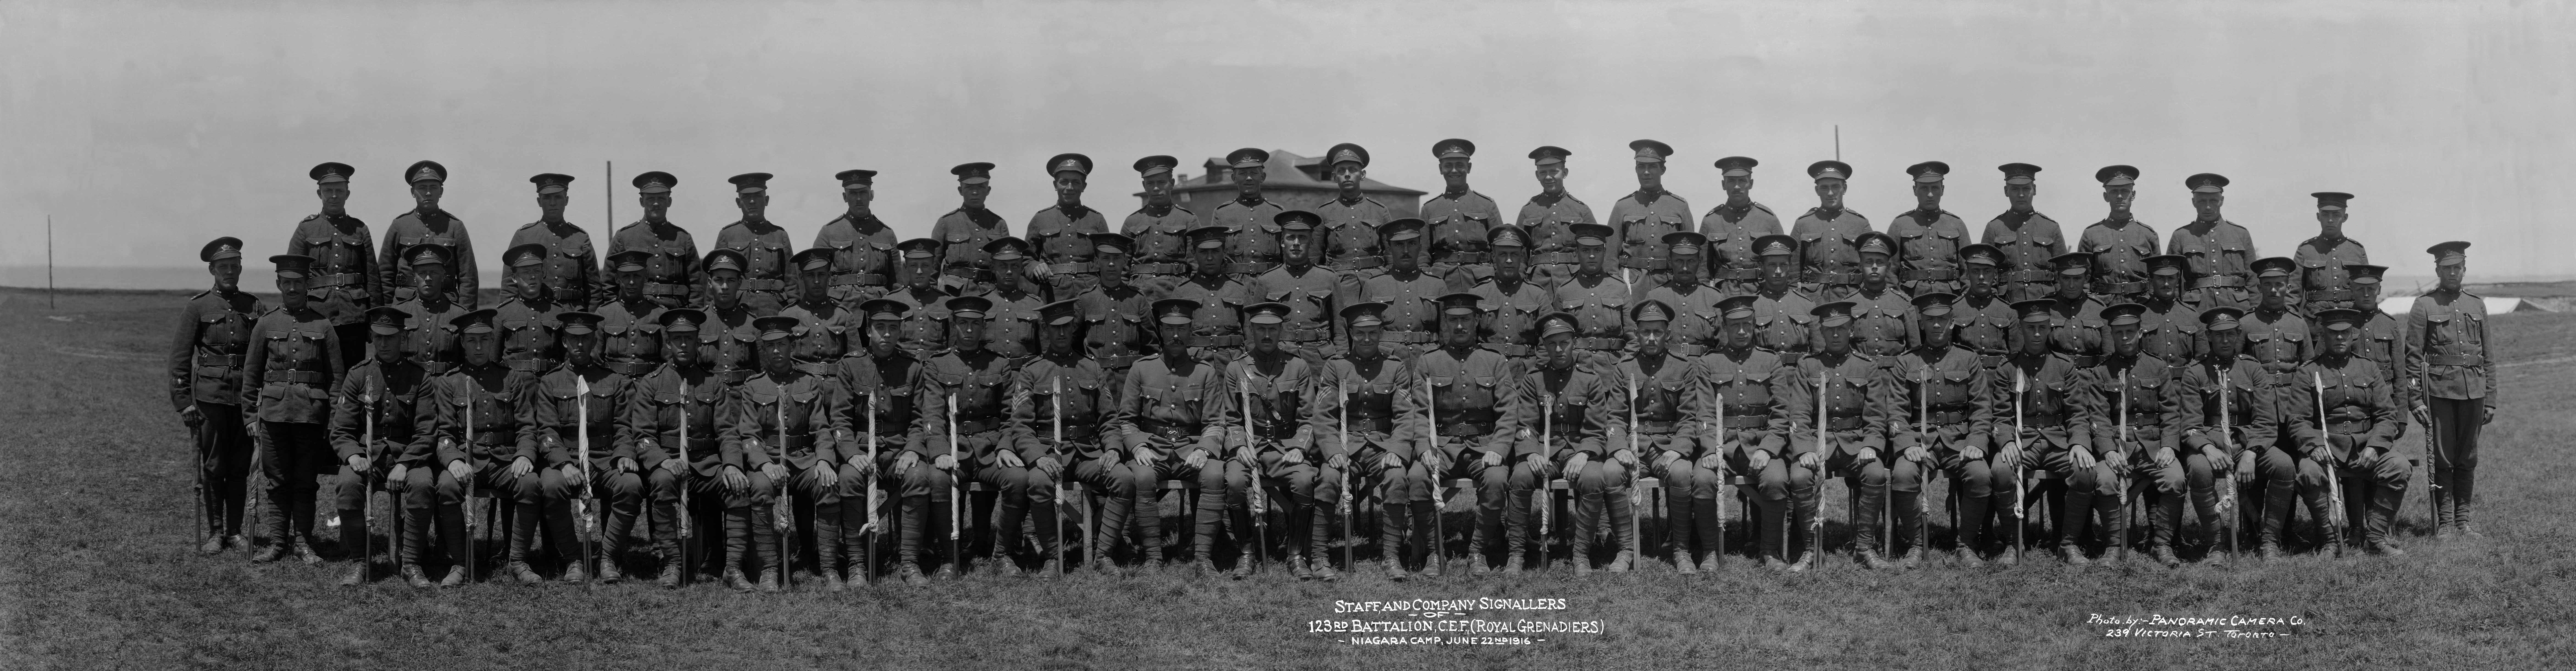 Staff & Signallers 1916-06-22 MIKAN 4473806 sm